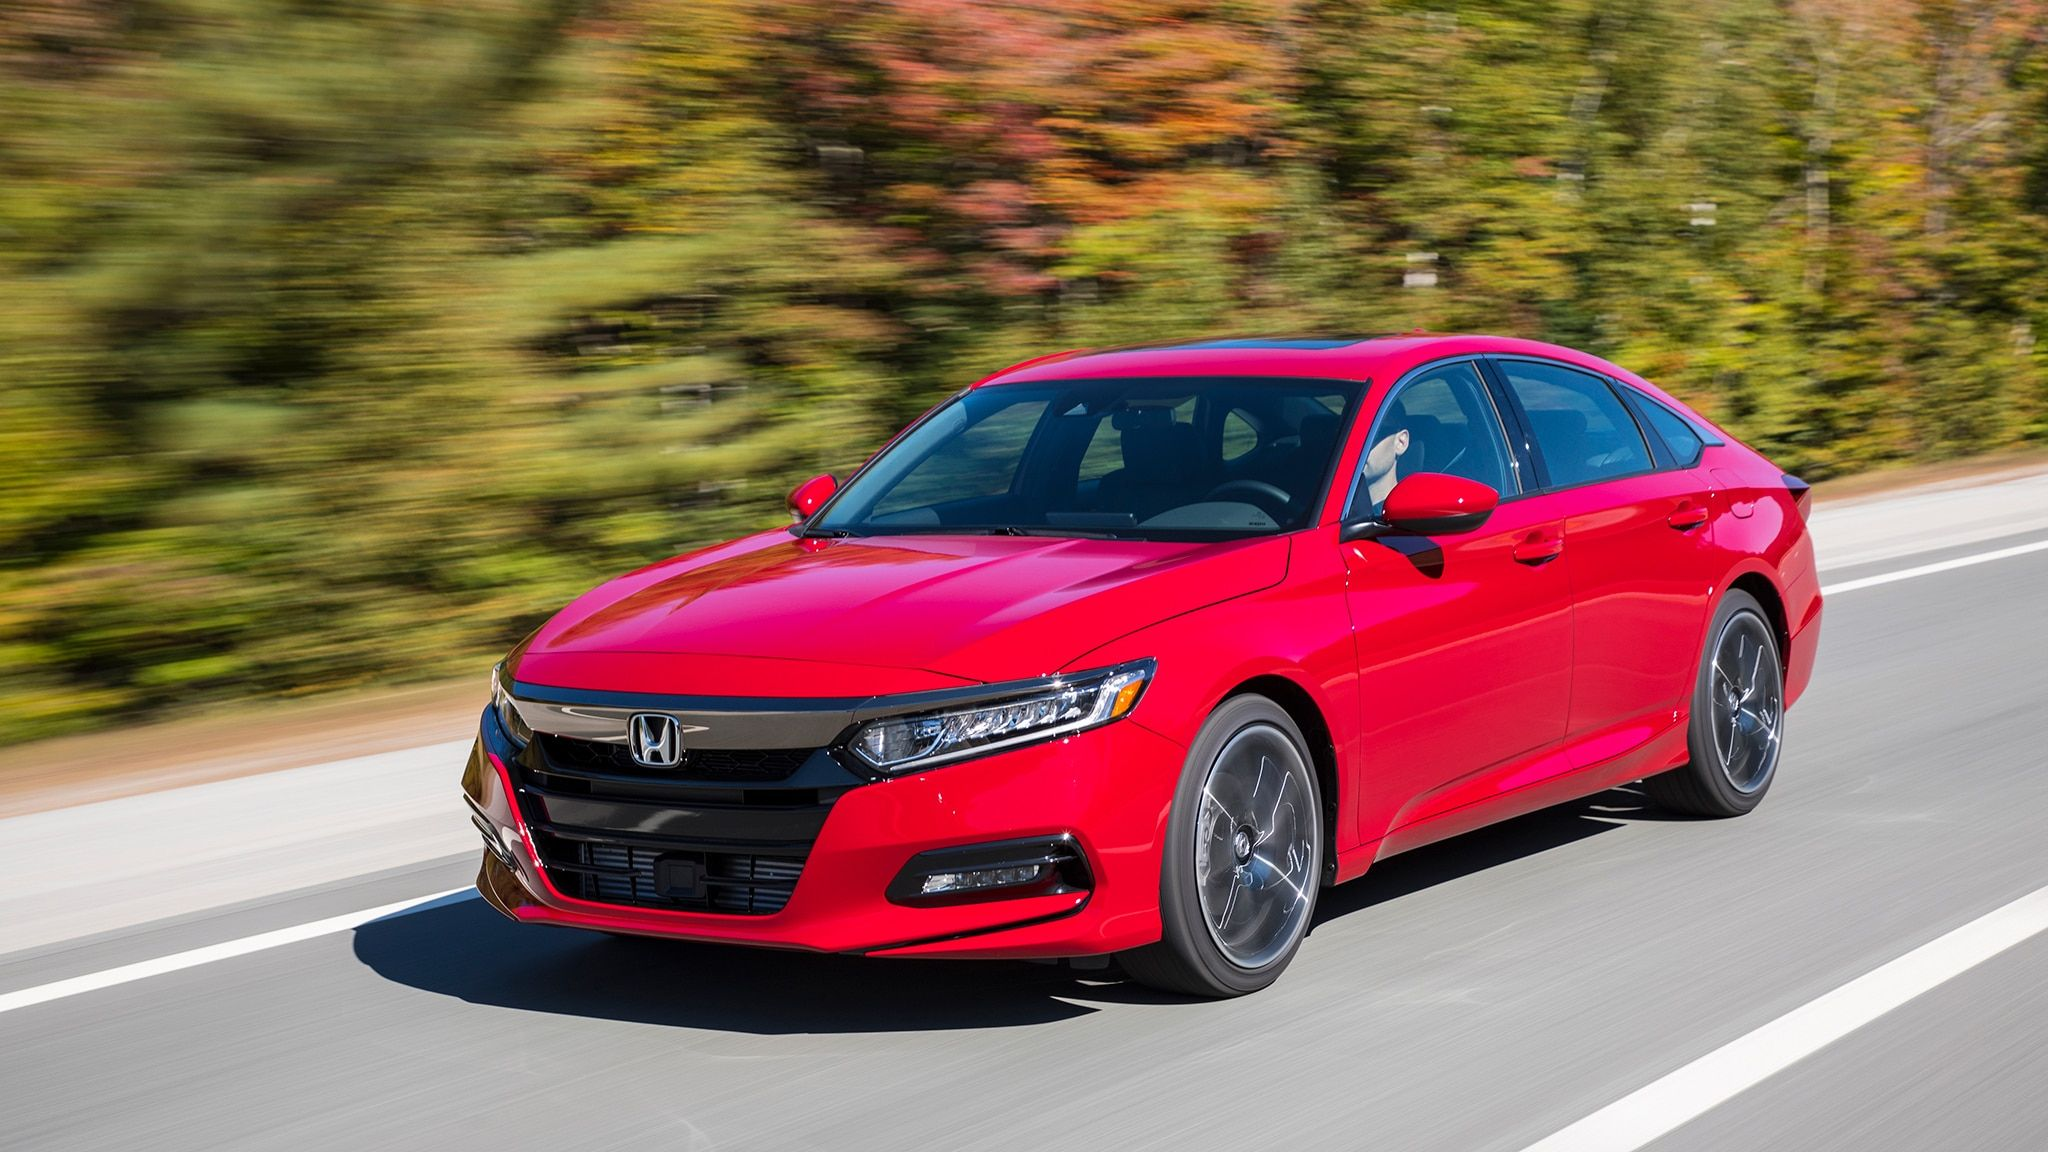 Honda Accord 2020 Price, Changes, Features, Interior